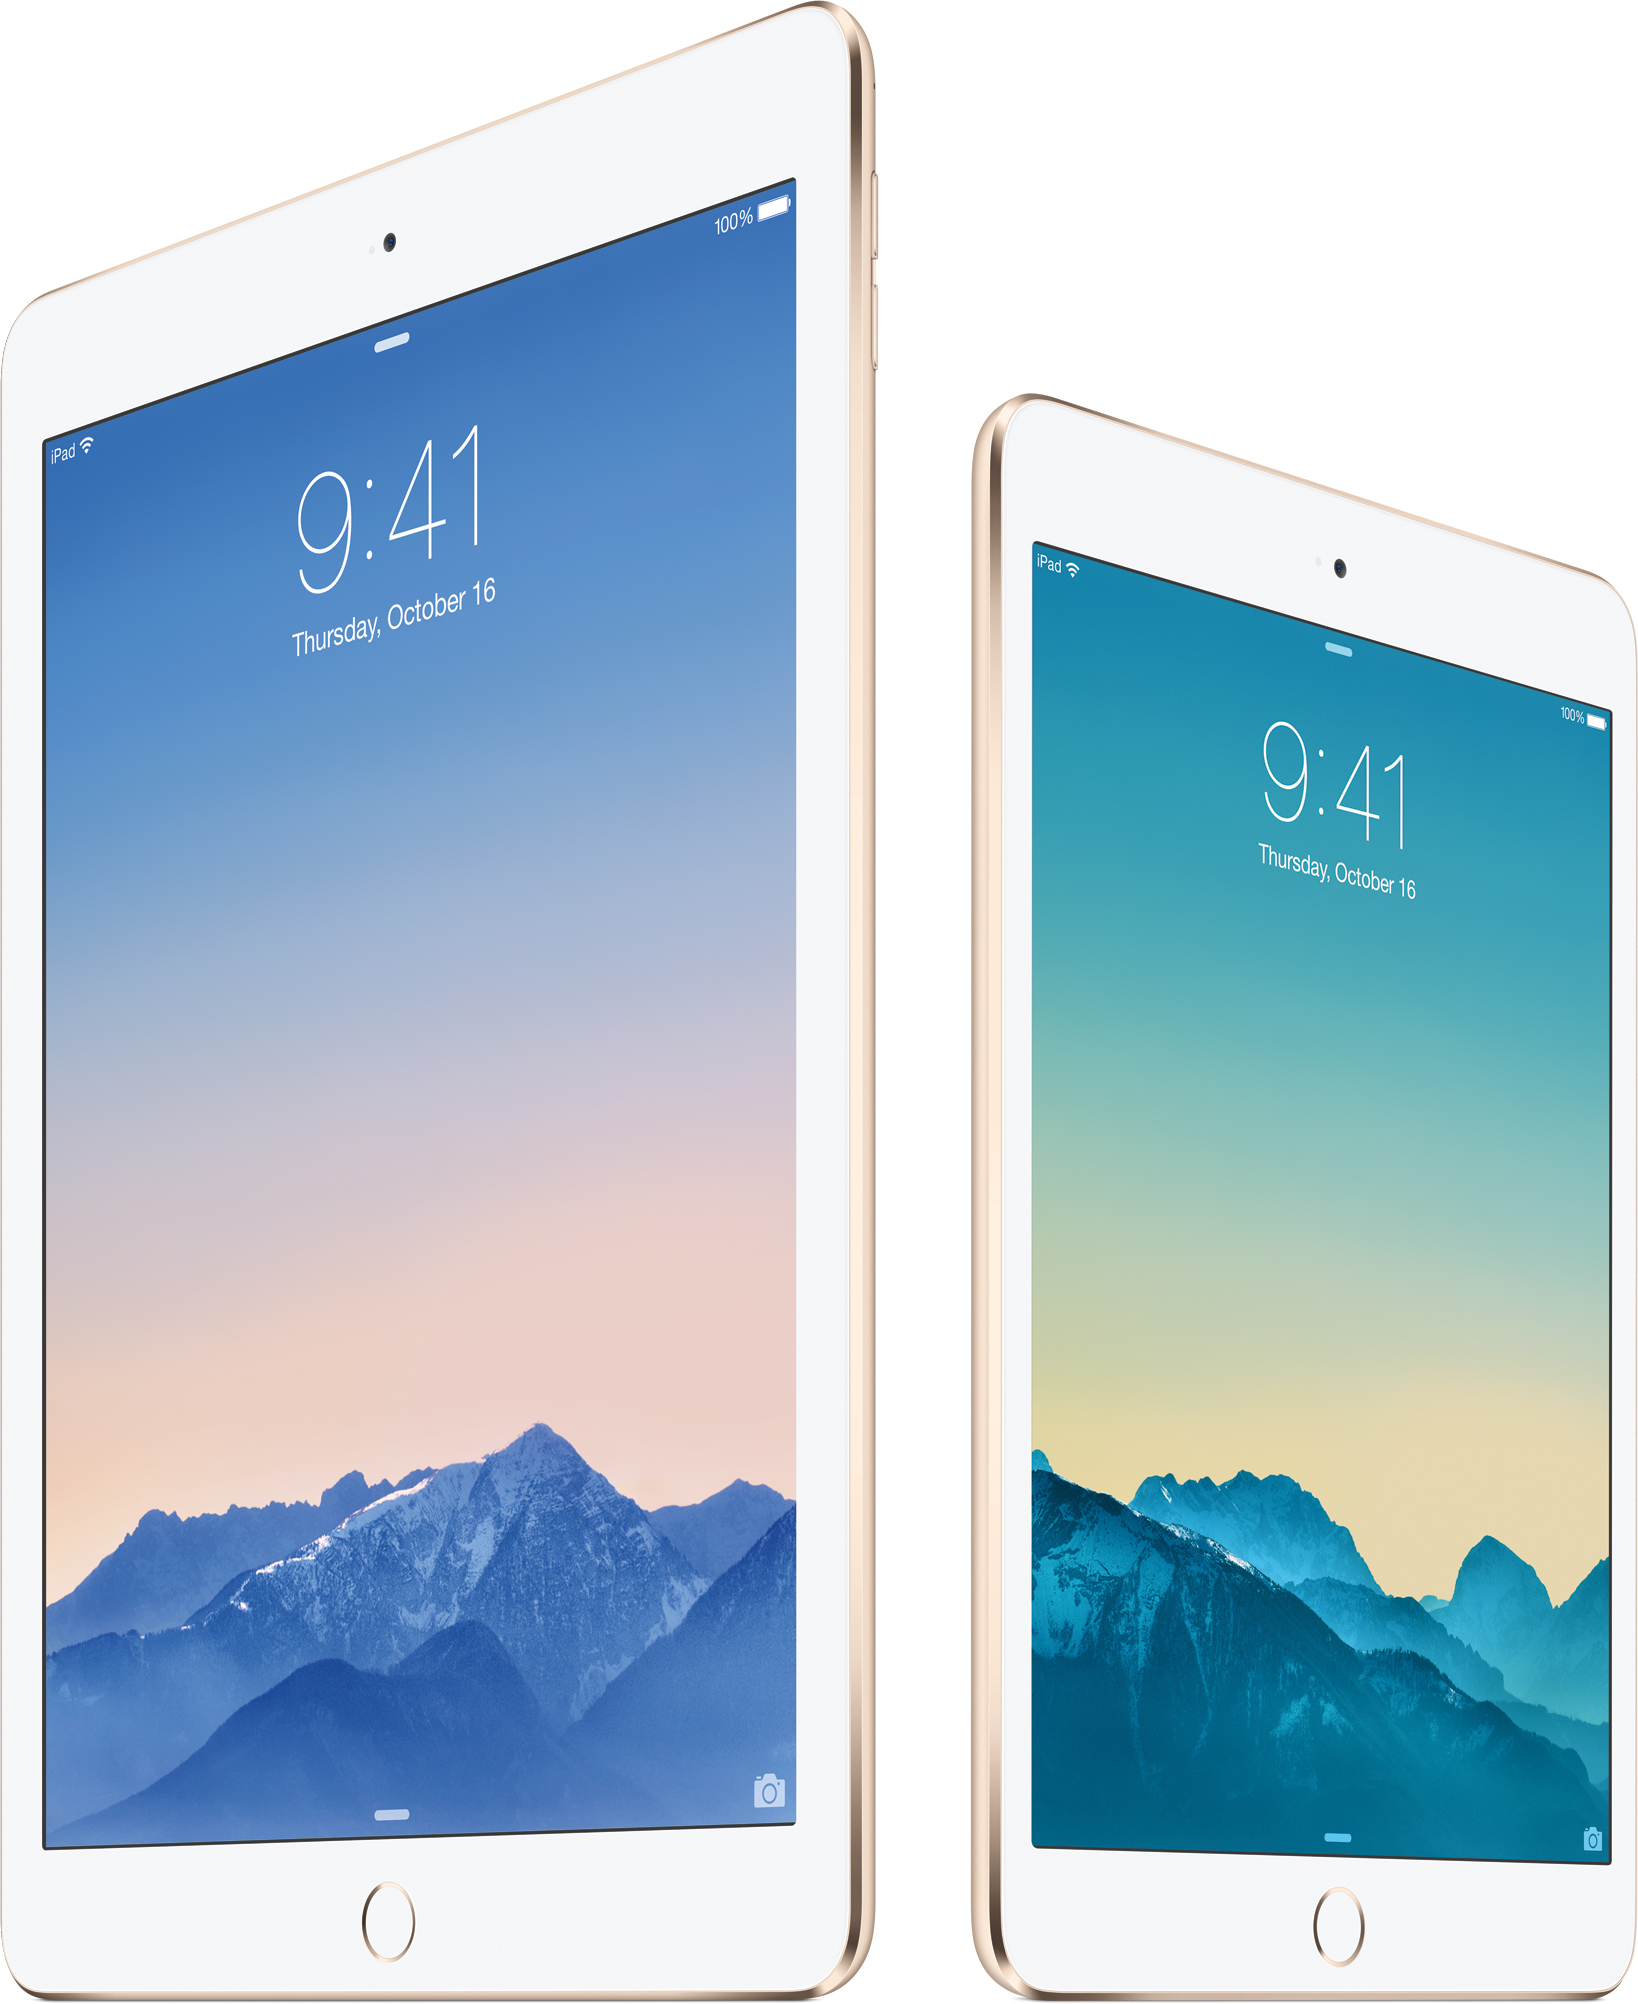 iPad Air 2 e iPad mini 3